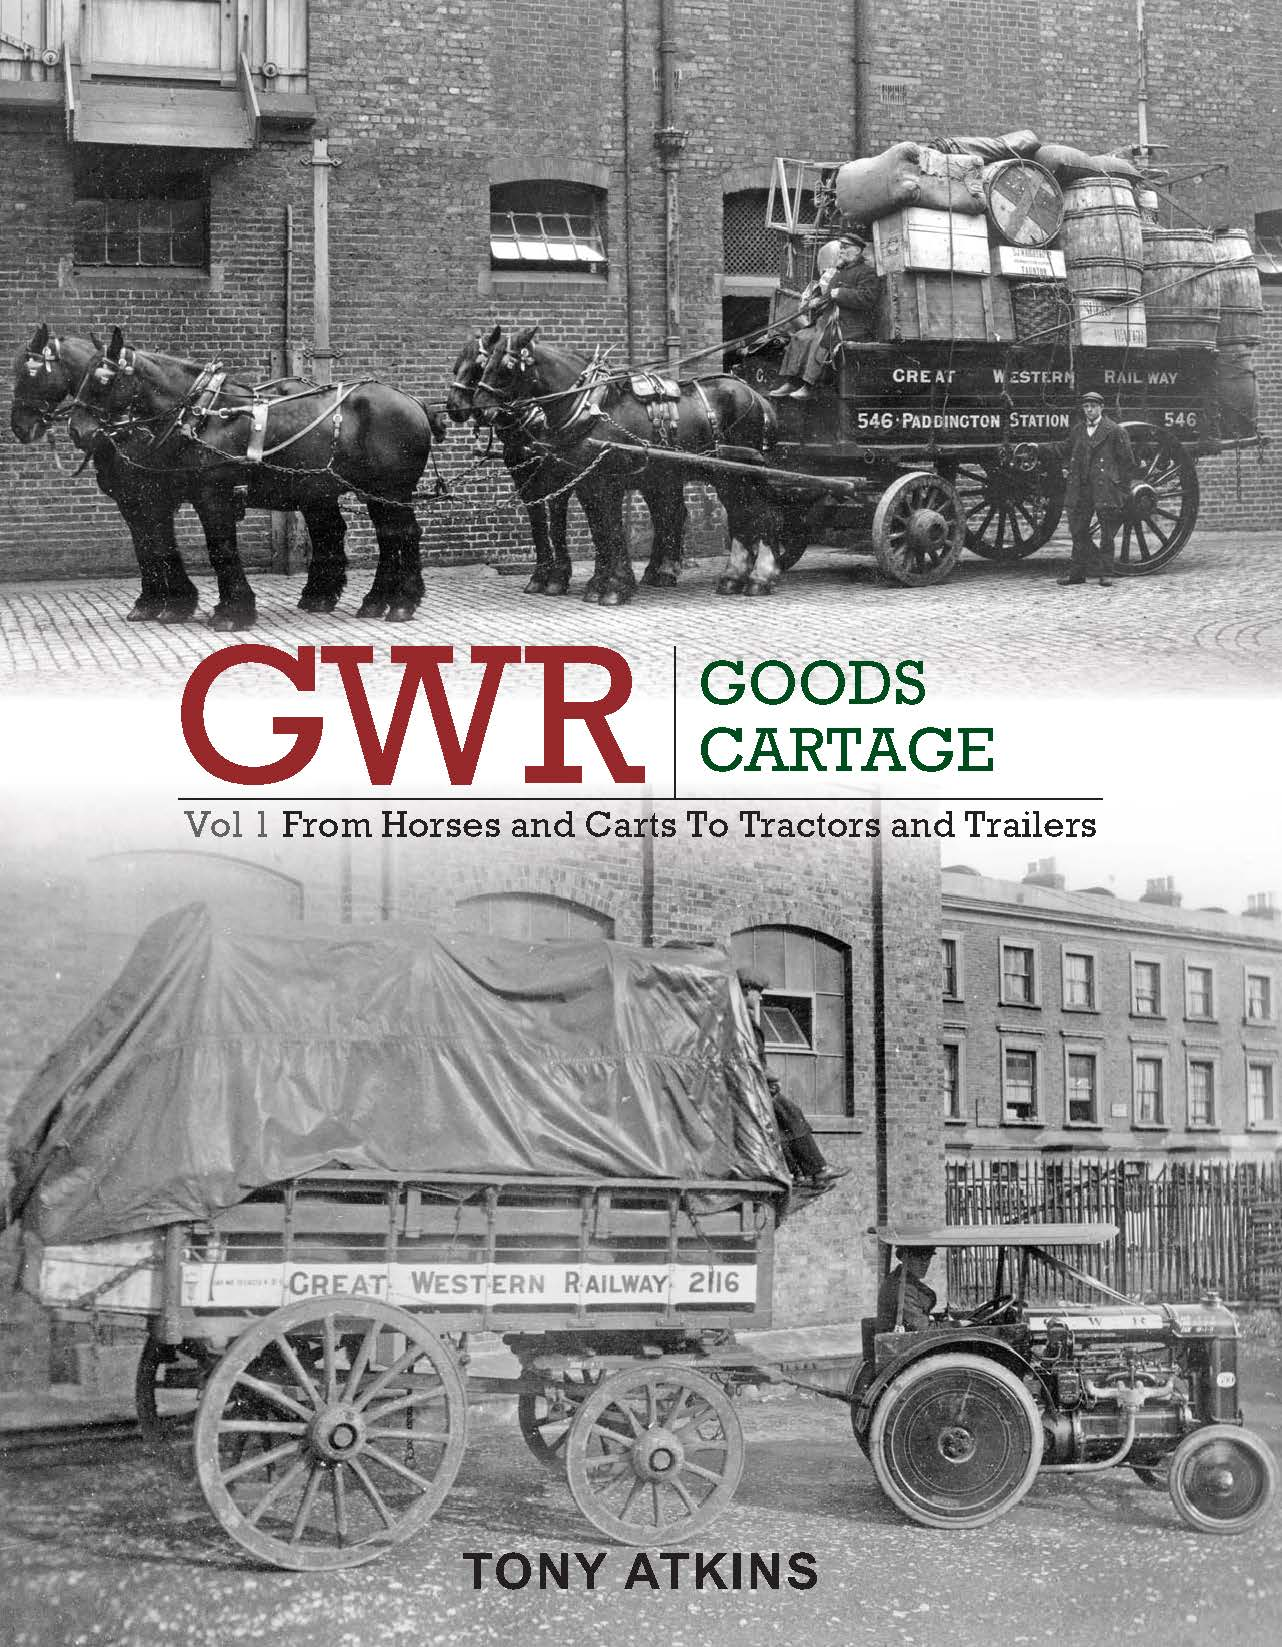 GWR Goods Cartage Volume 1